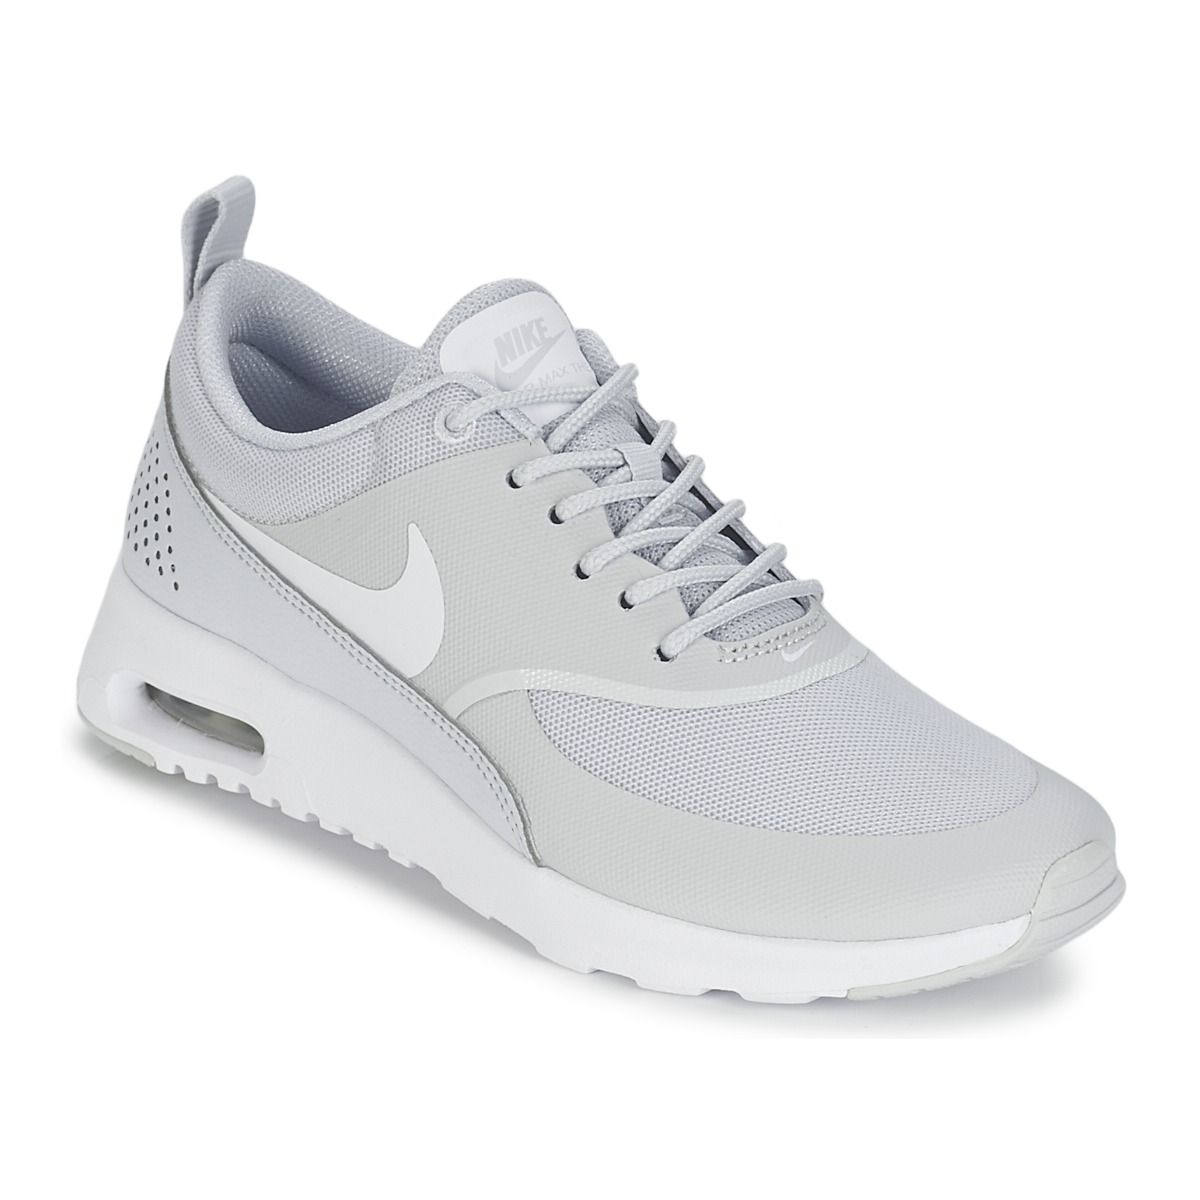 wholesale dealer 2874e 504c3 Baskets basses Nike AIR MAX THEA W Gris prix promo Baskets Femme Spartoo  119.00 €